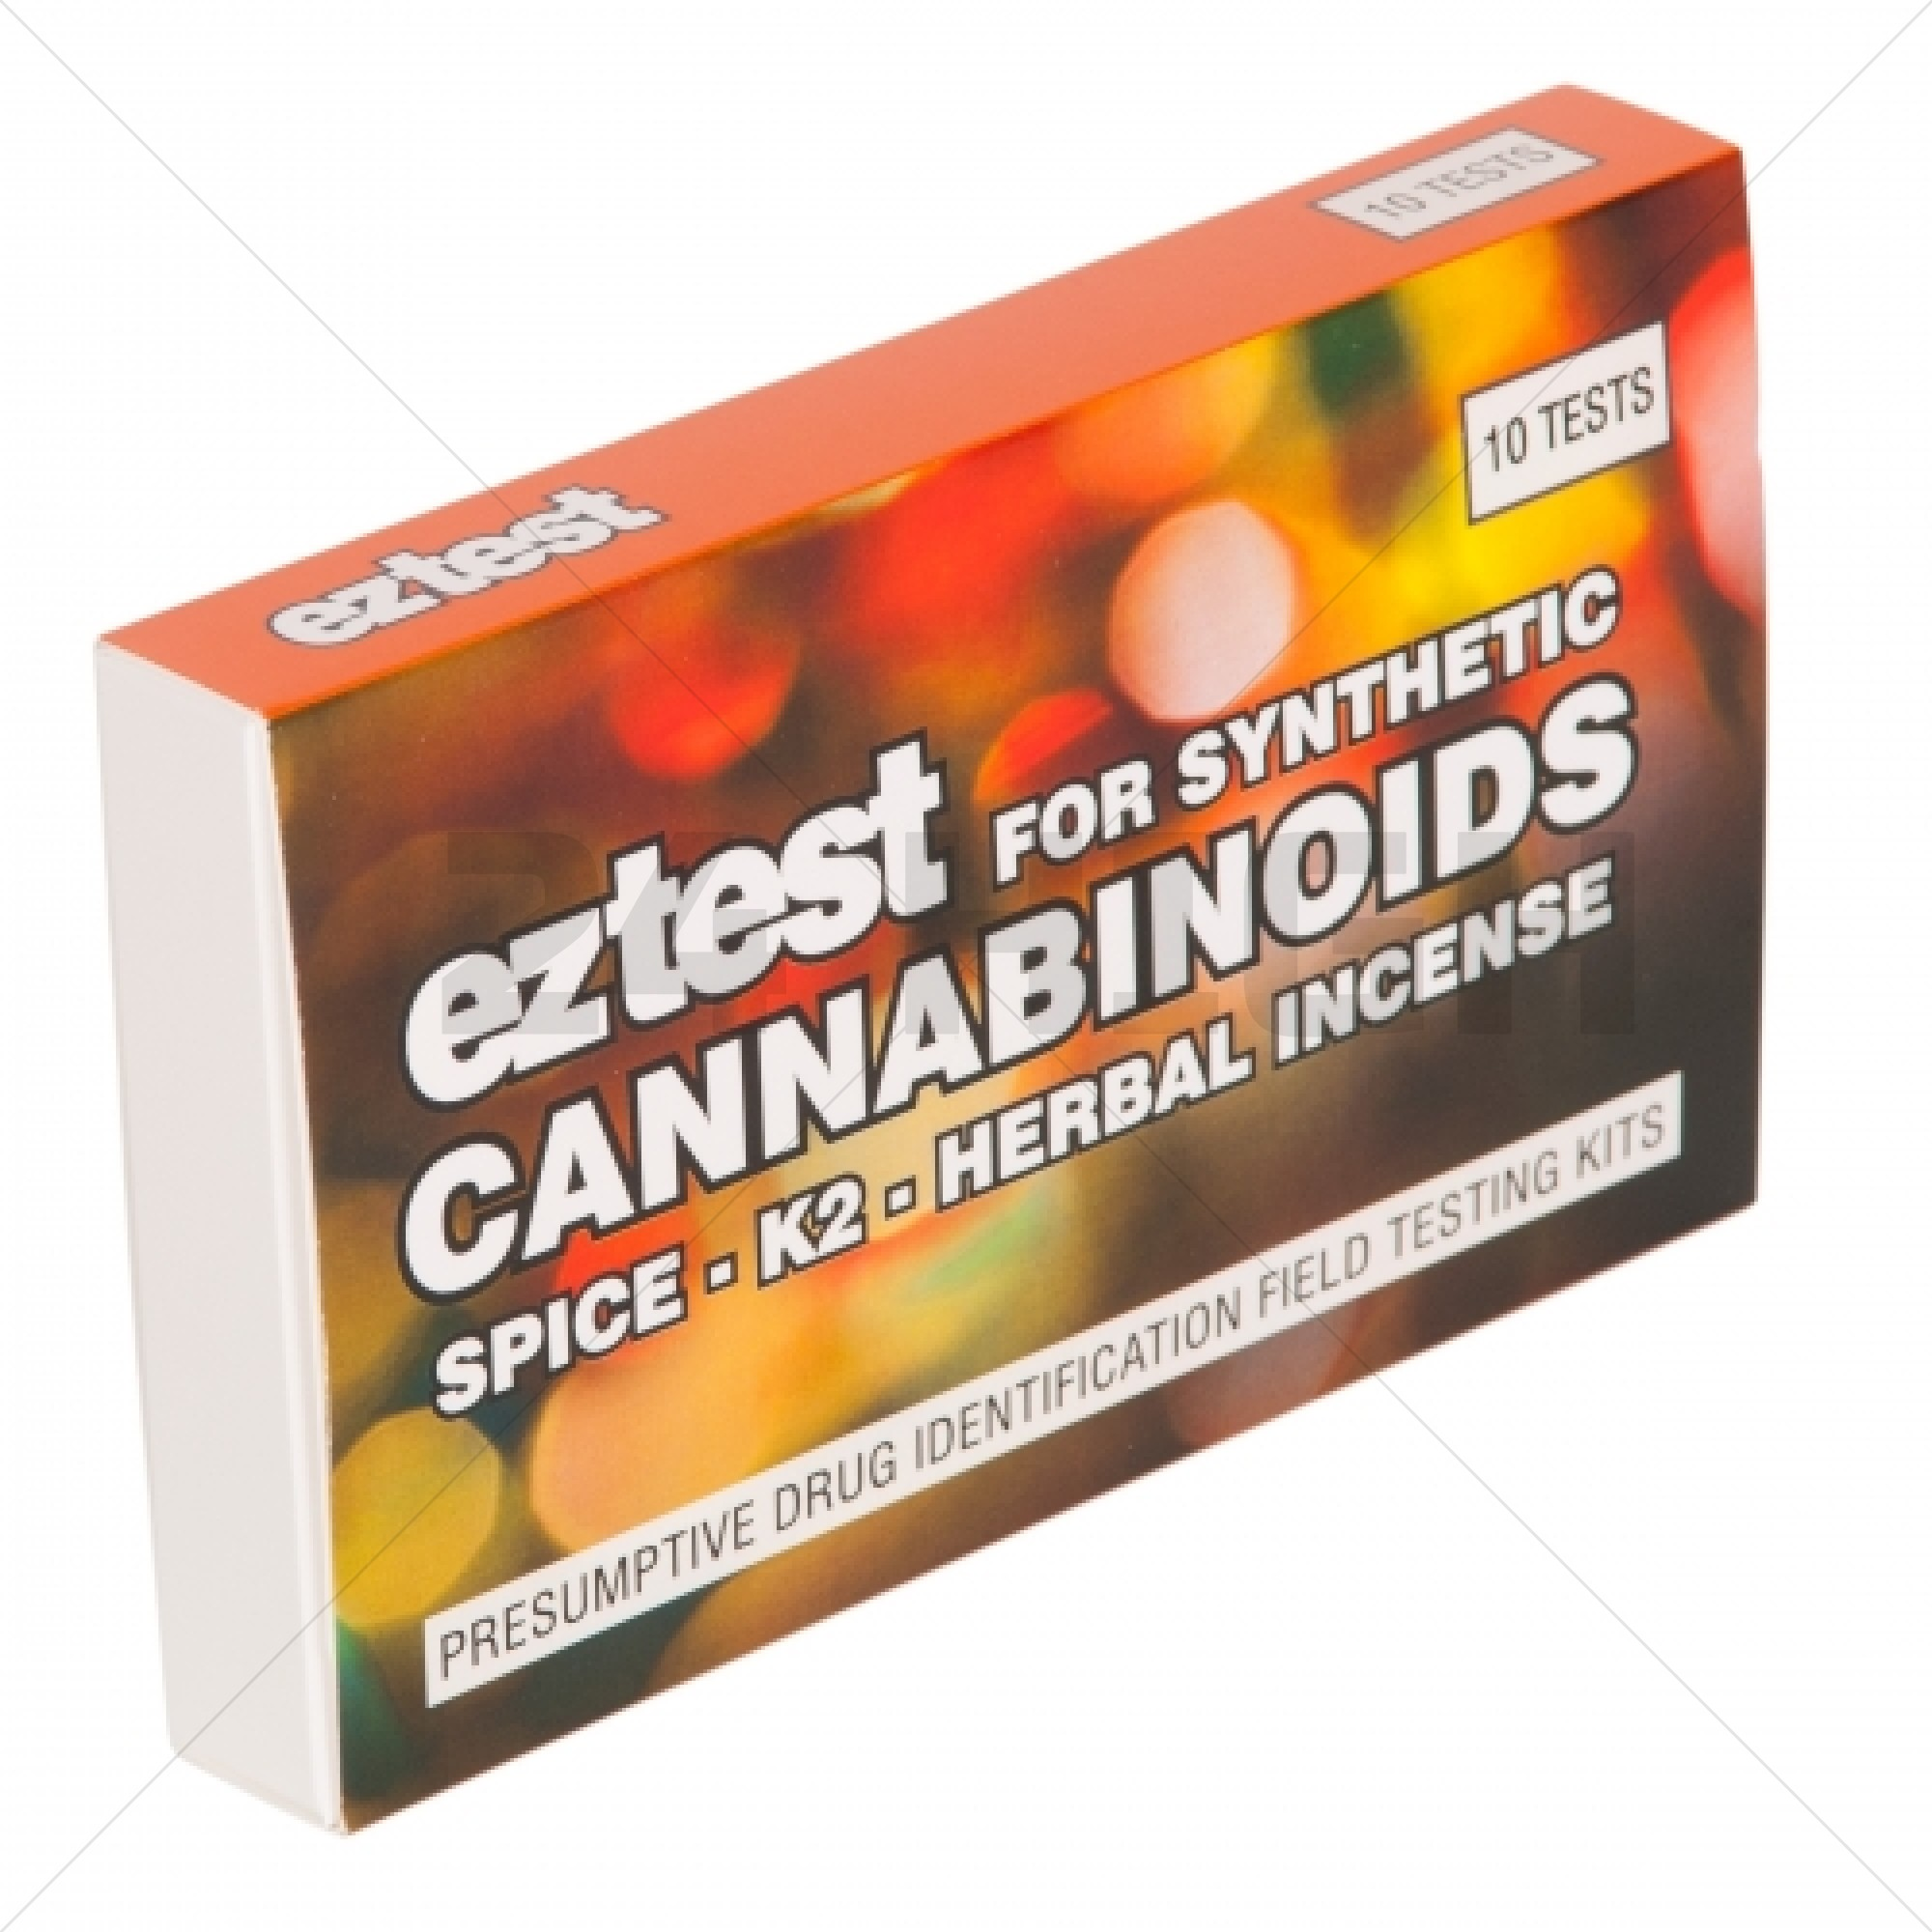 EZ Test for Synthetic Cannabinoids